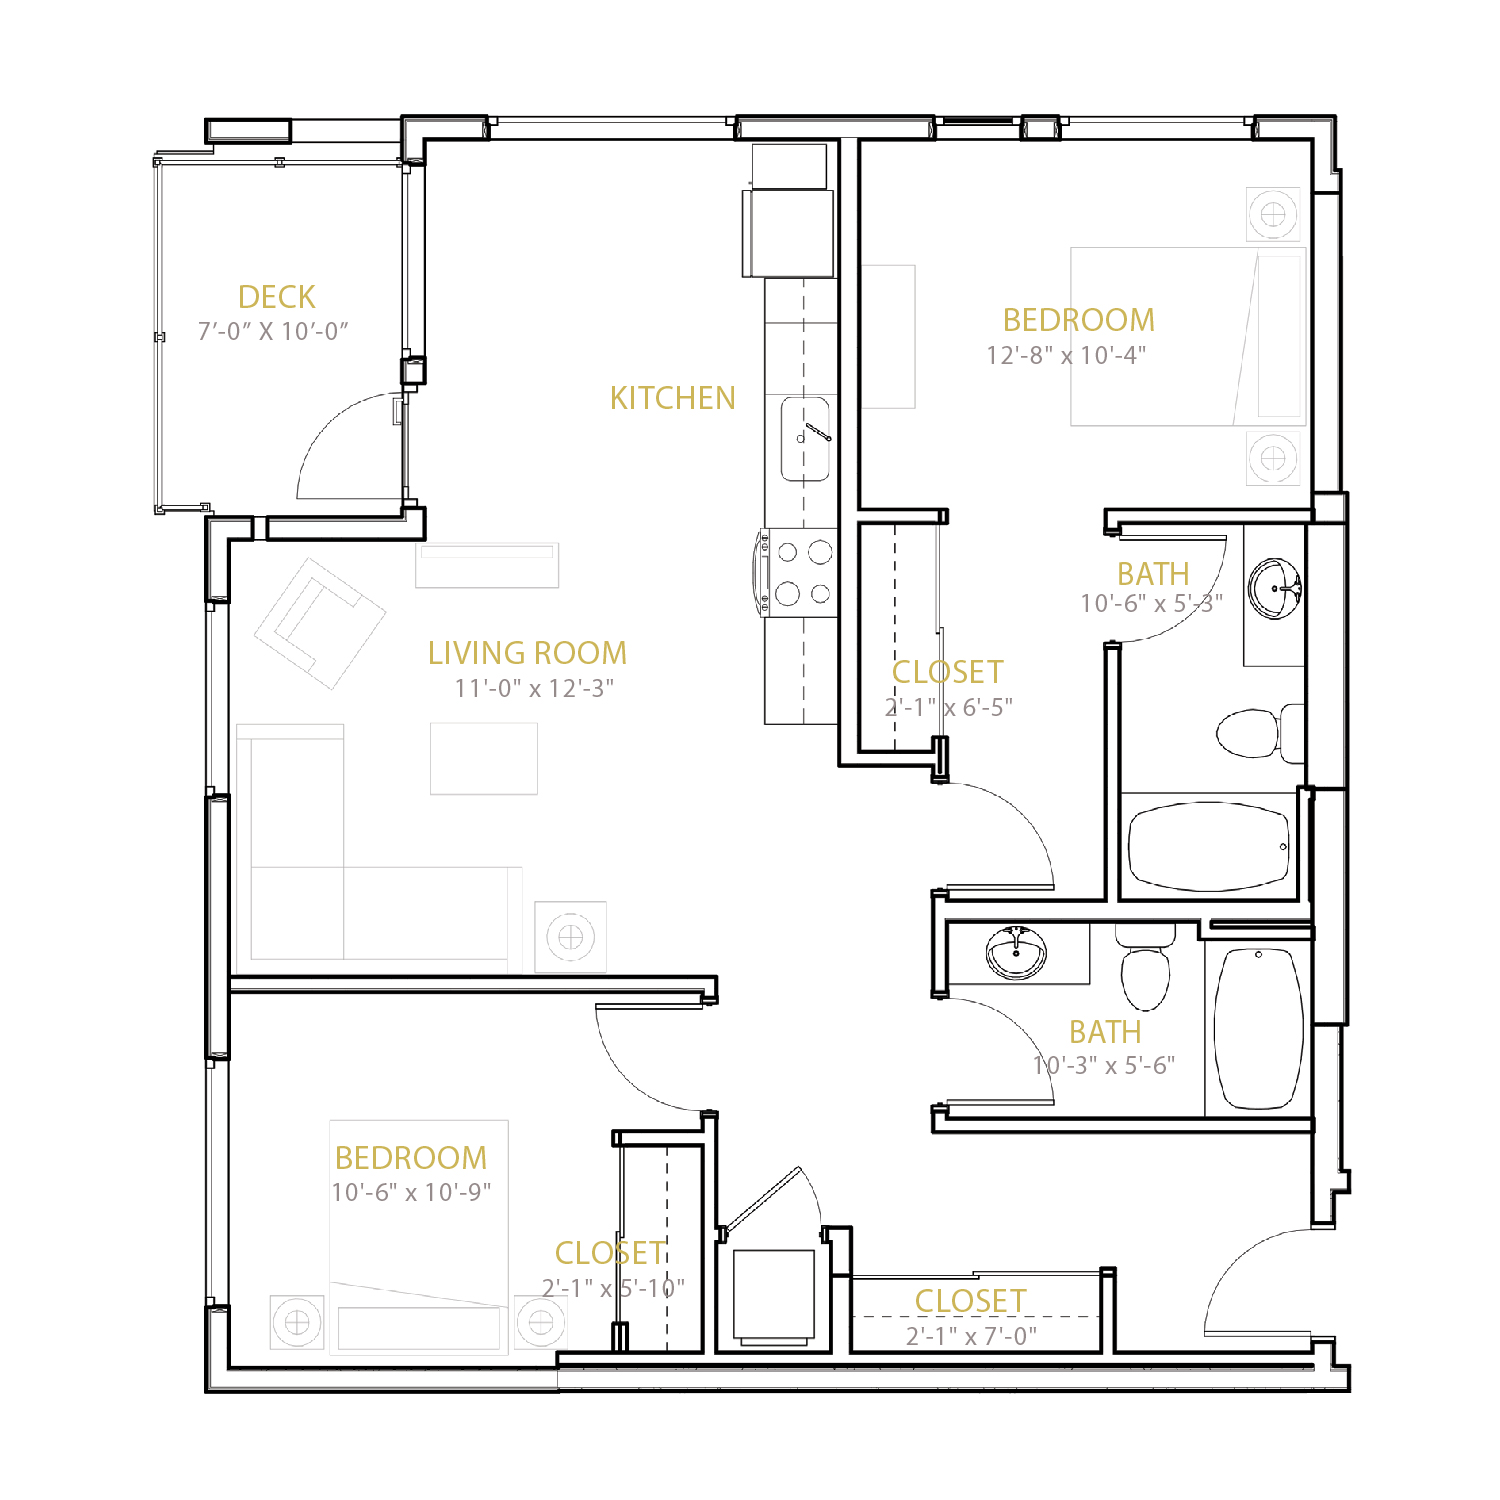 C Five floor plan diagram. Two bedrooms, two bathrooms, an open kitchen and living area, and a deck.